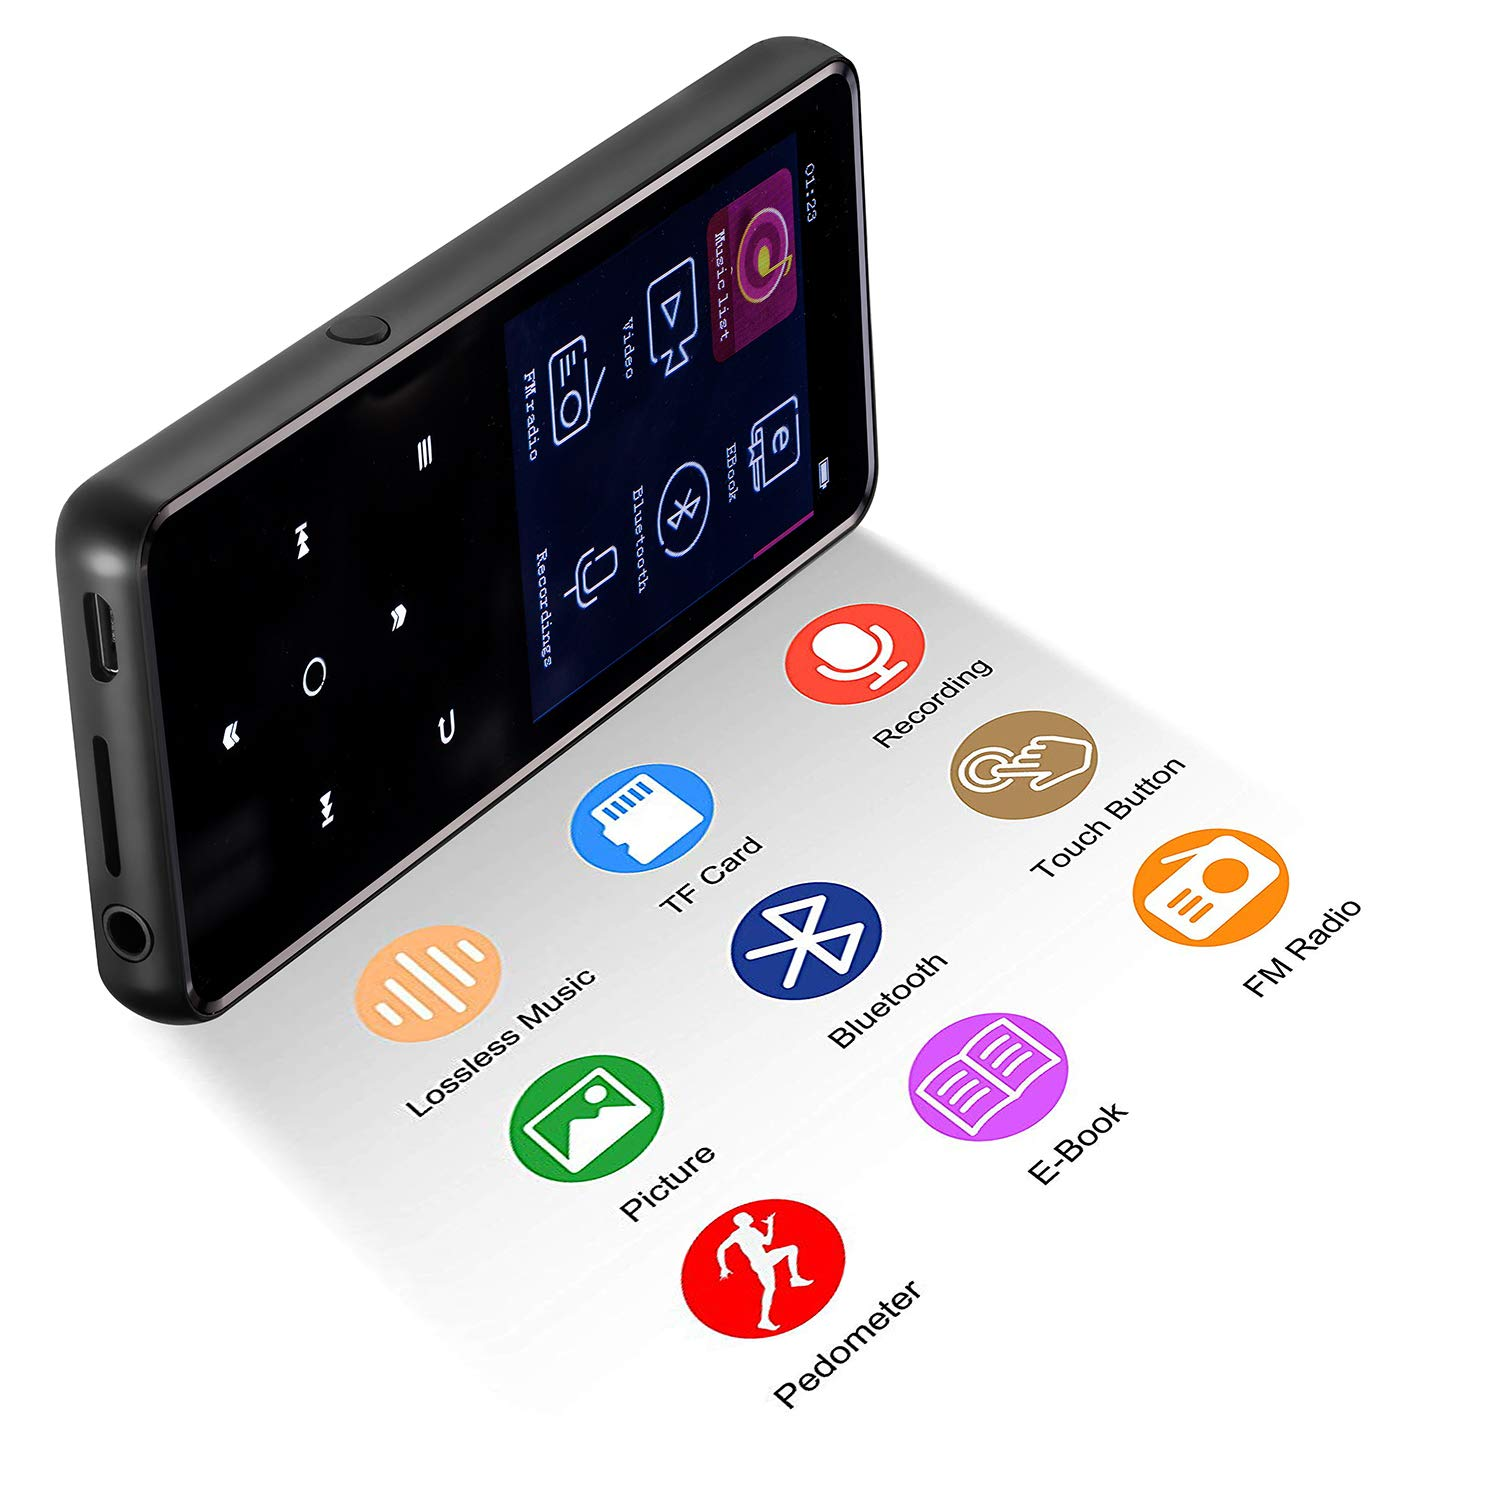 MP3 Player,PELDA Bluetooth MP3 Player,16GB MP3 Player with 2.4'' Large Screen, HiFi Lossless Music Player with Speaker,Touch Buttons,FM Radio/Recorder,16GB Come with a Wired Headphone by Pelda (Image #3)